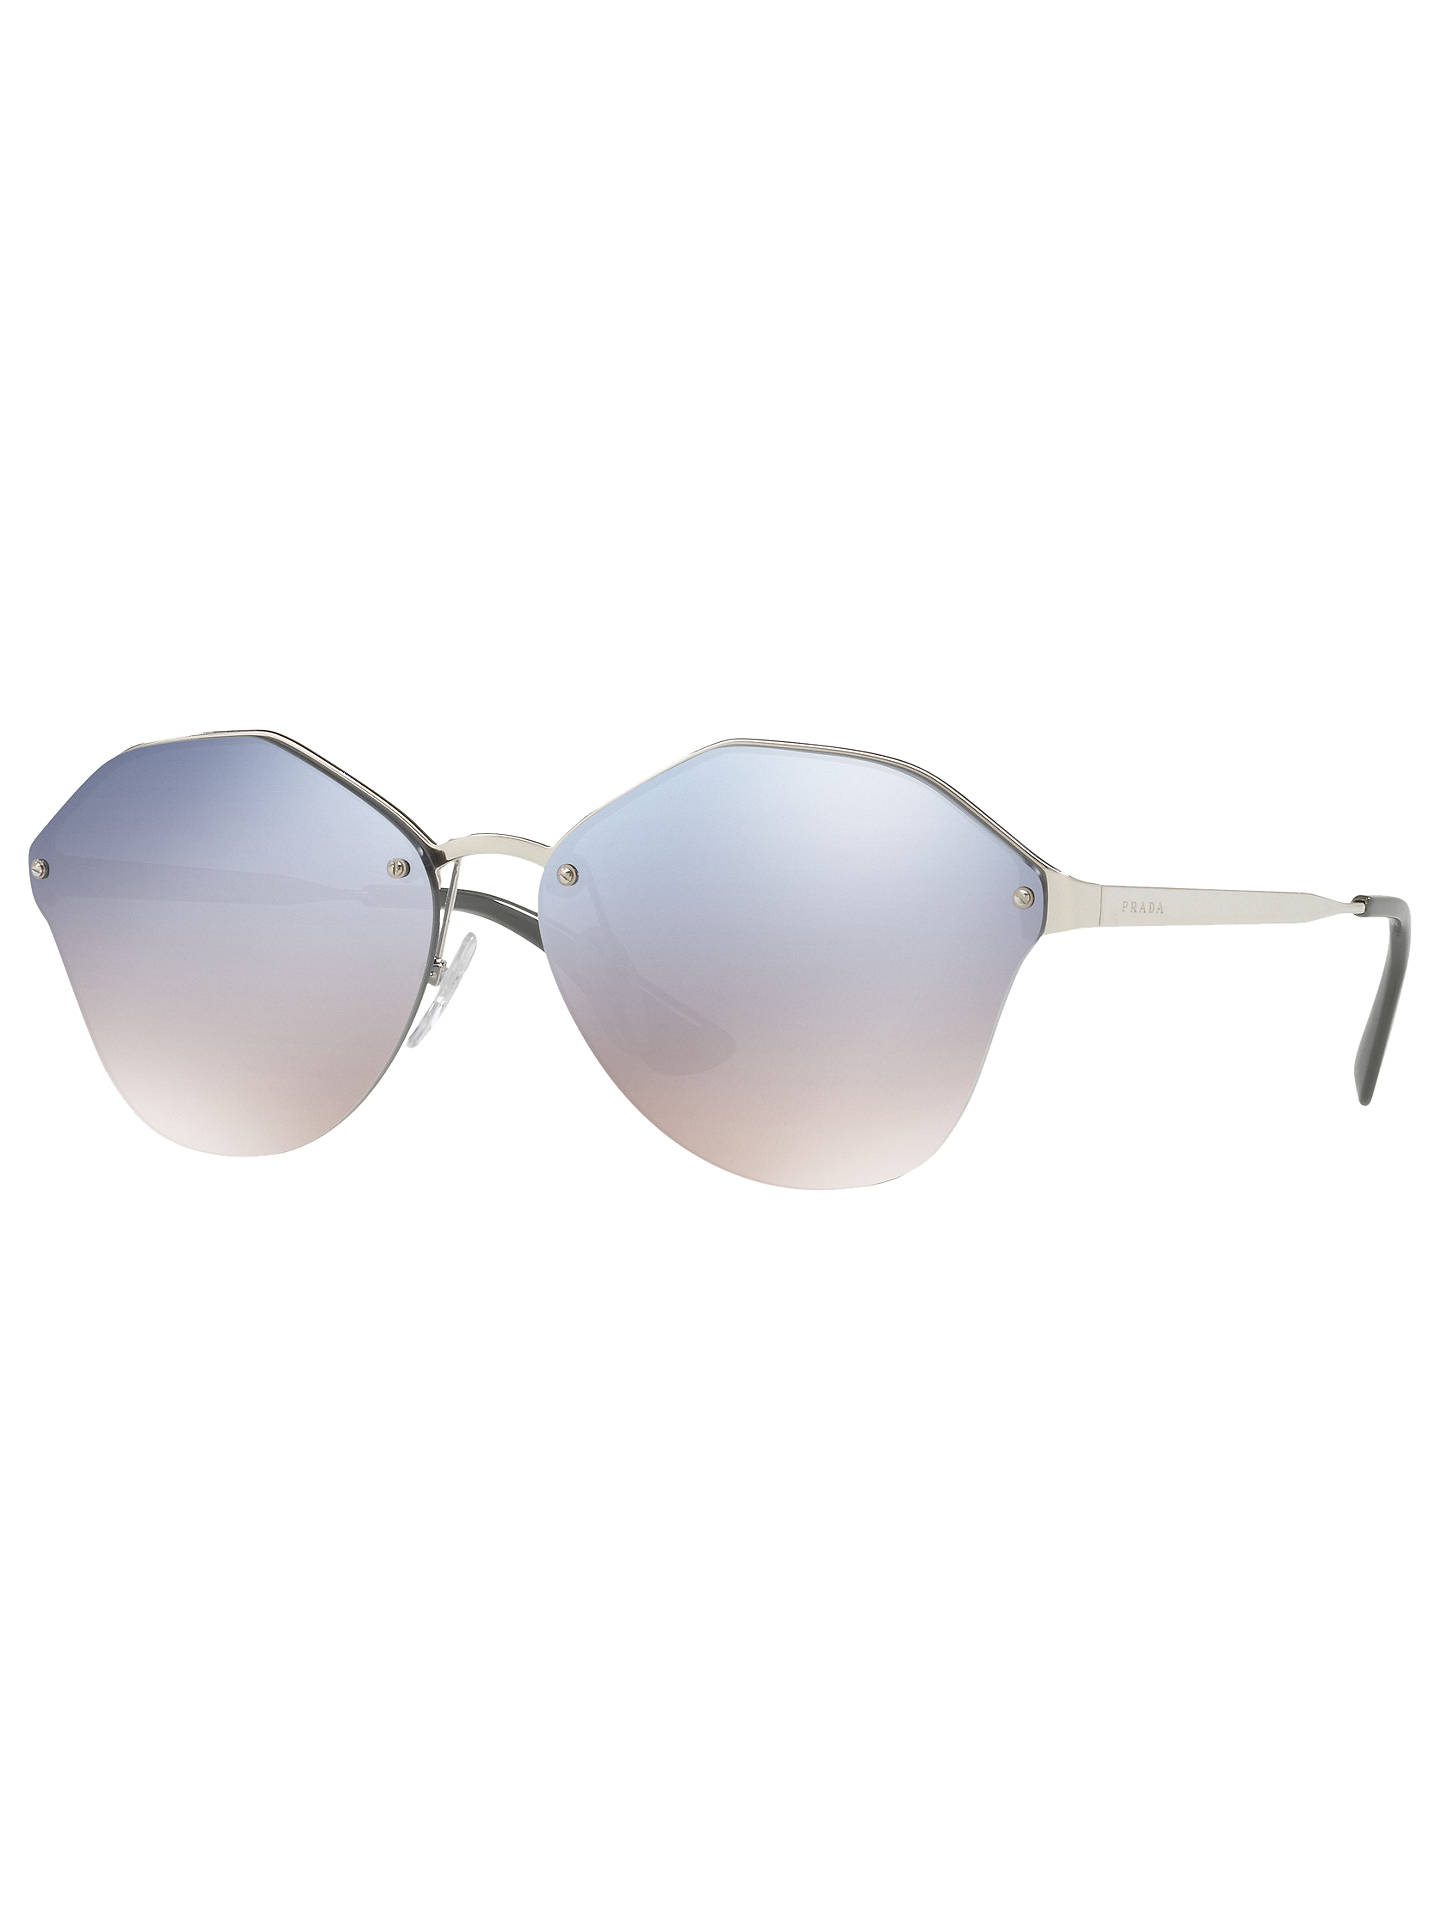 93eea2c9d3 Prada PR 64TS Oval Sunglasses at John Lewis   Partners